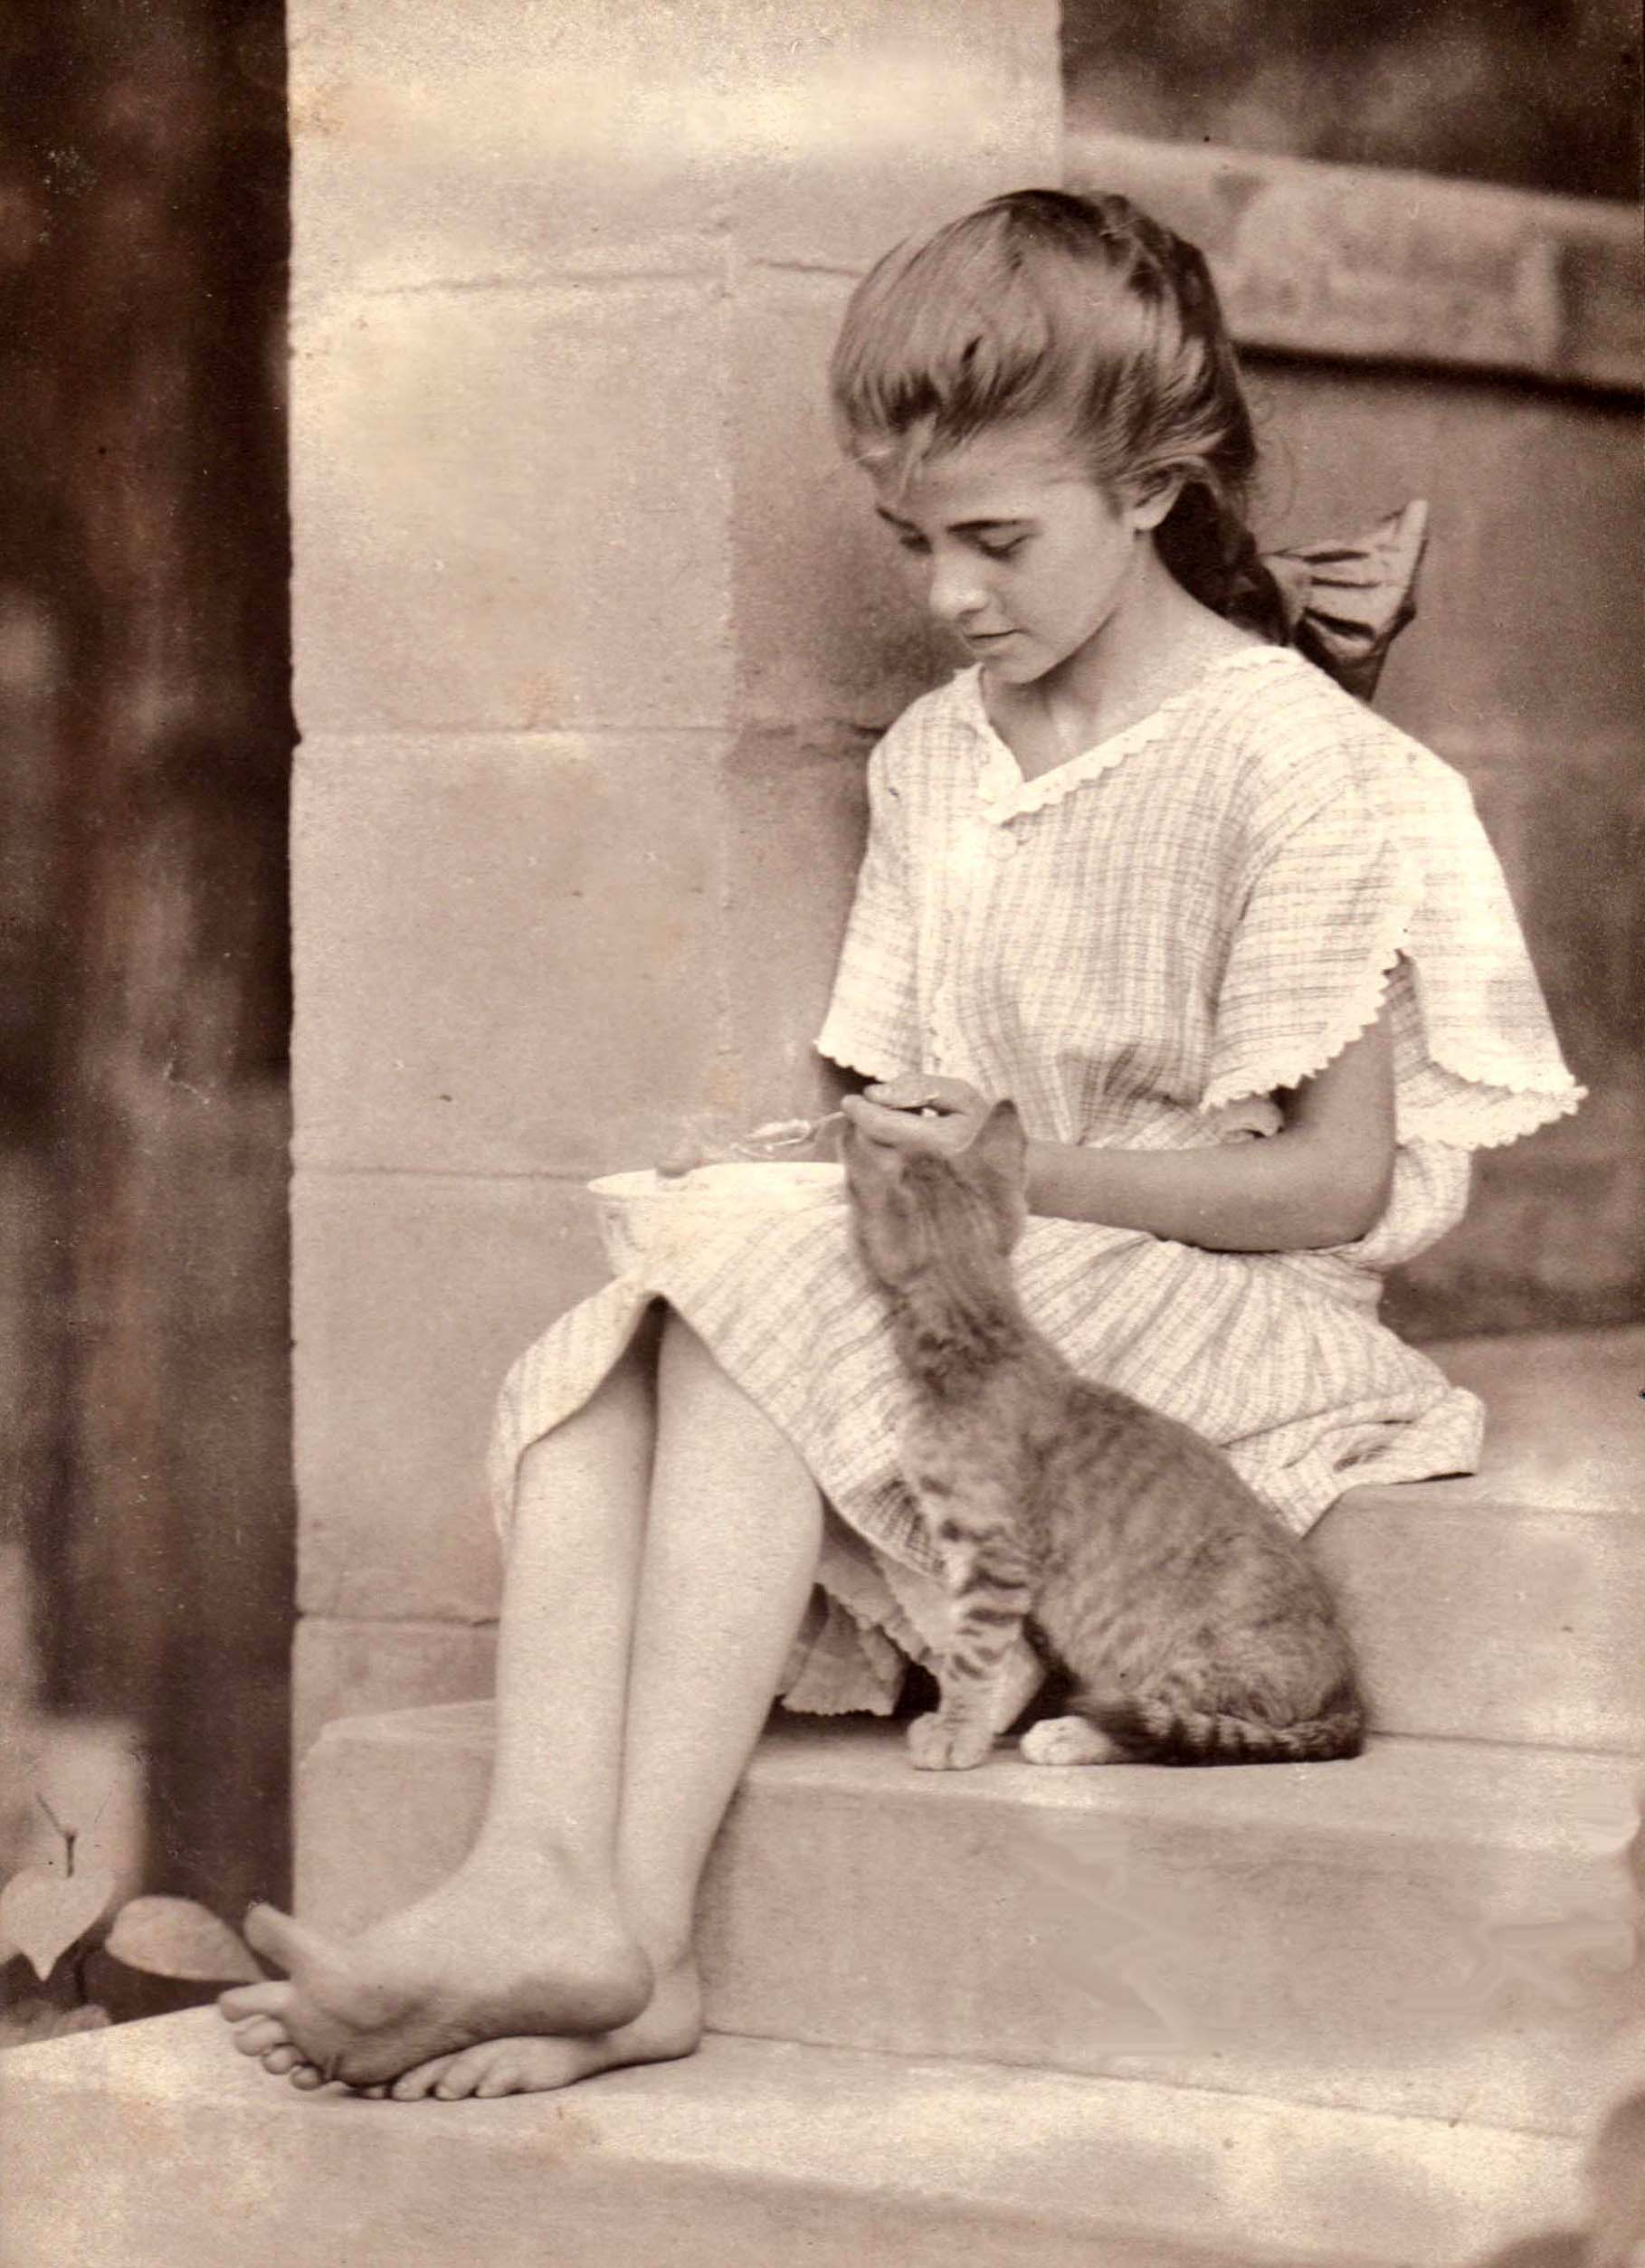 C.R. Tucker: Girl feeding a kitten, June 1908